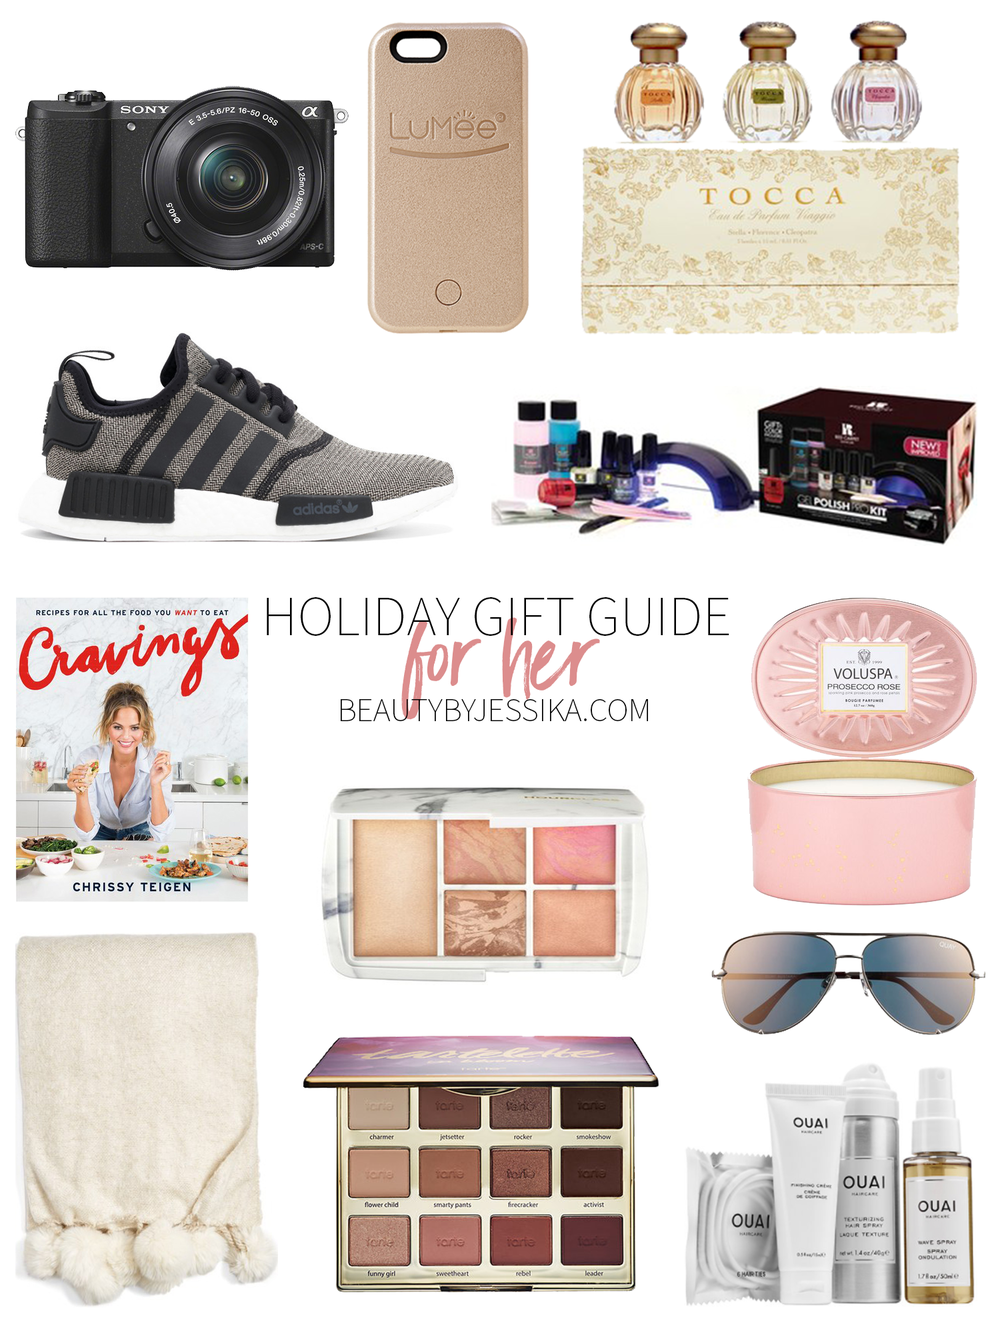 Today's gift guide is for all of the ladies in our lives. There's something for every girl on this list: for the athletic girl, the beauty guru, the cook, the home maker, the techie, and more! Visit beautybyjessika.com to see the full list.